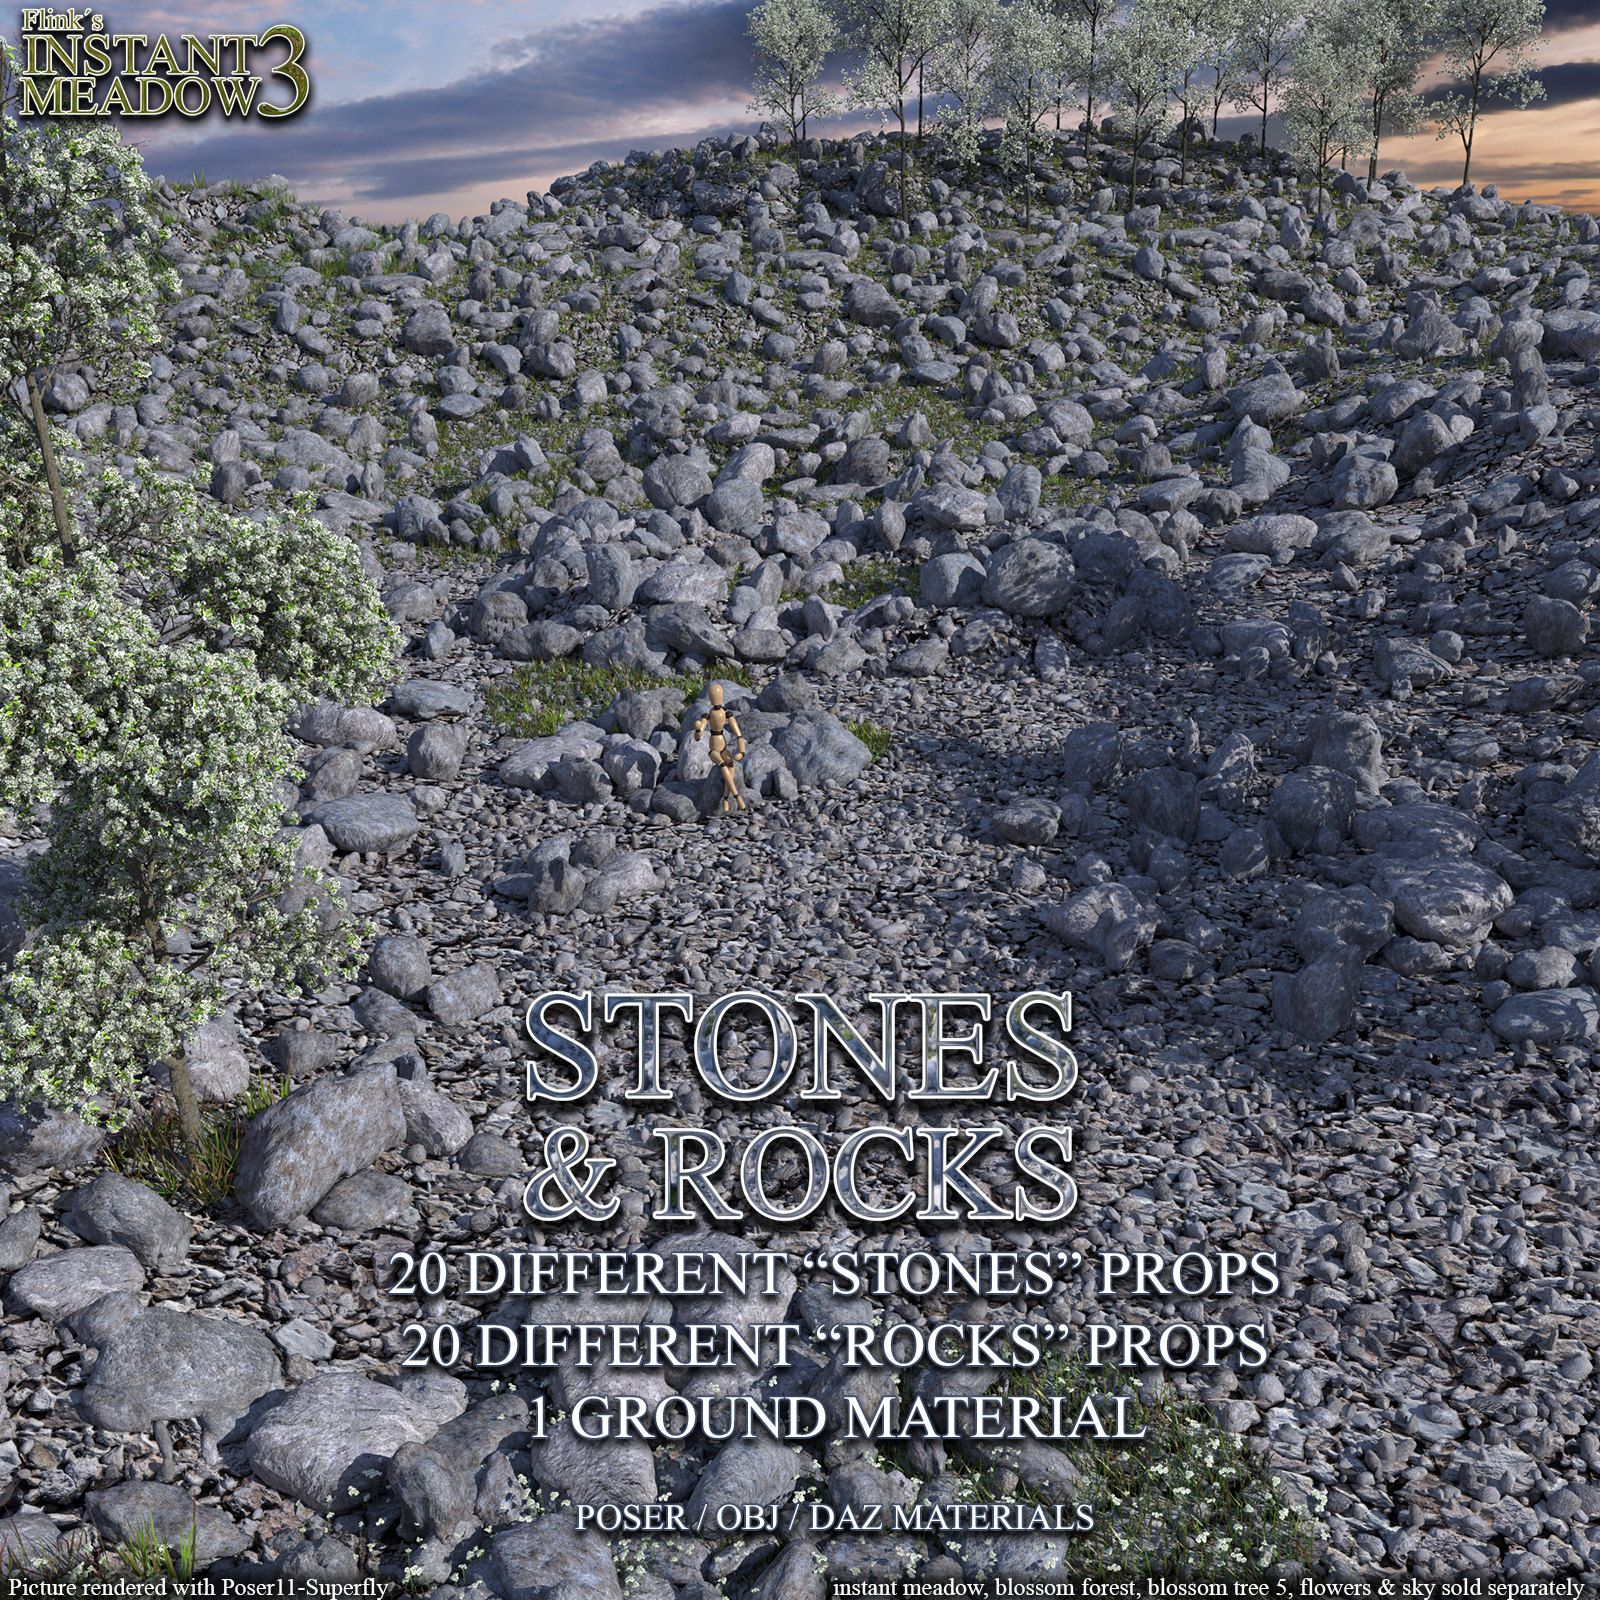 Flinks Instant Meadow 3 - Stones & Rocks by Flink